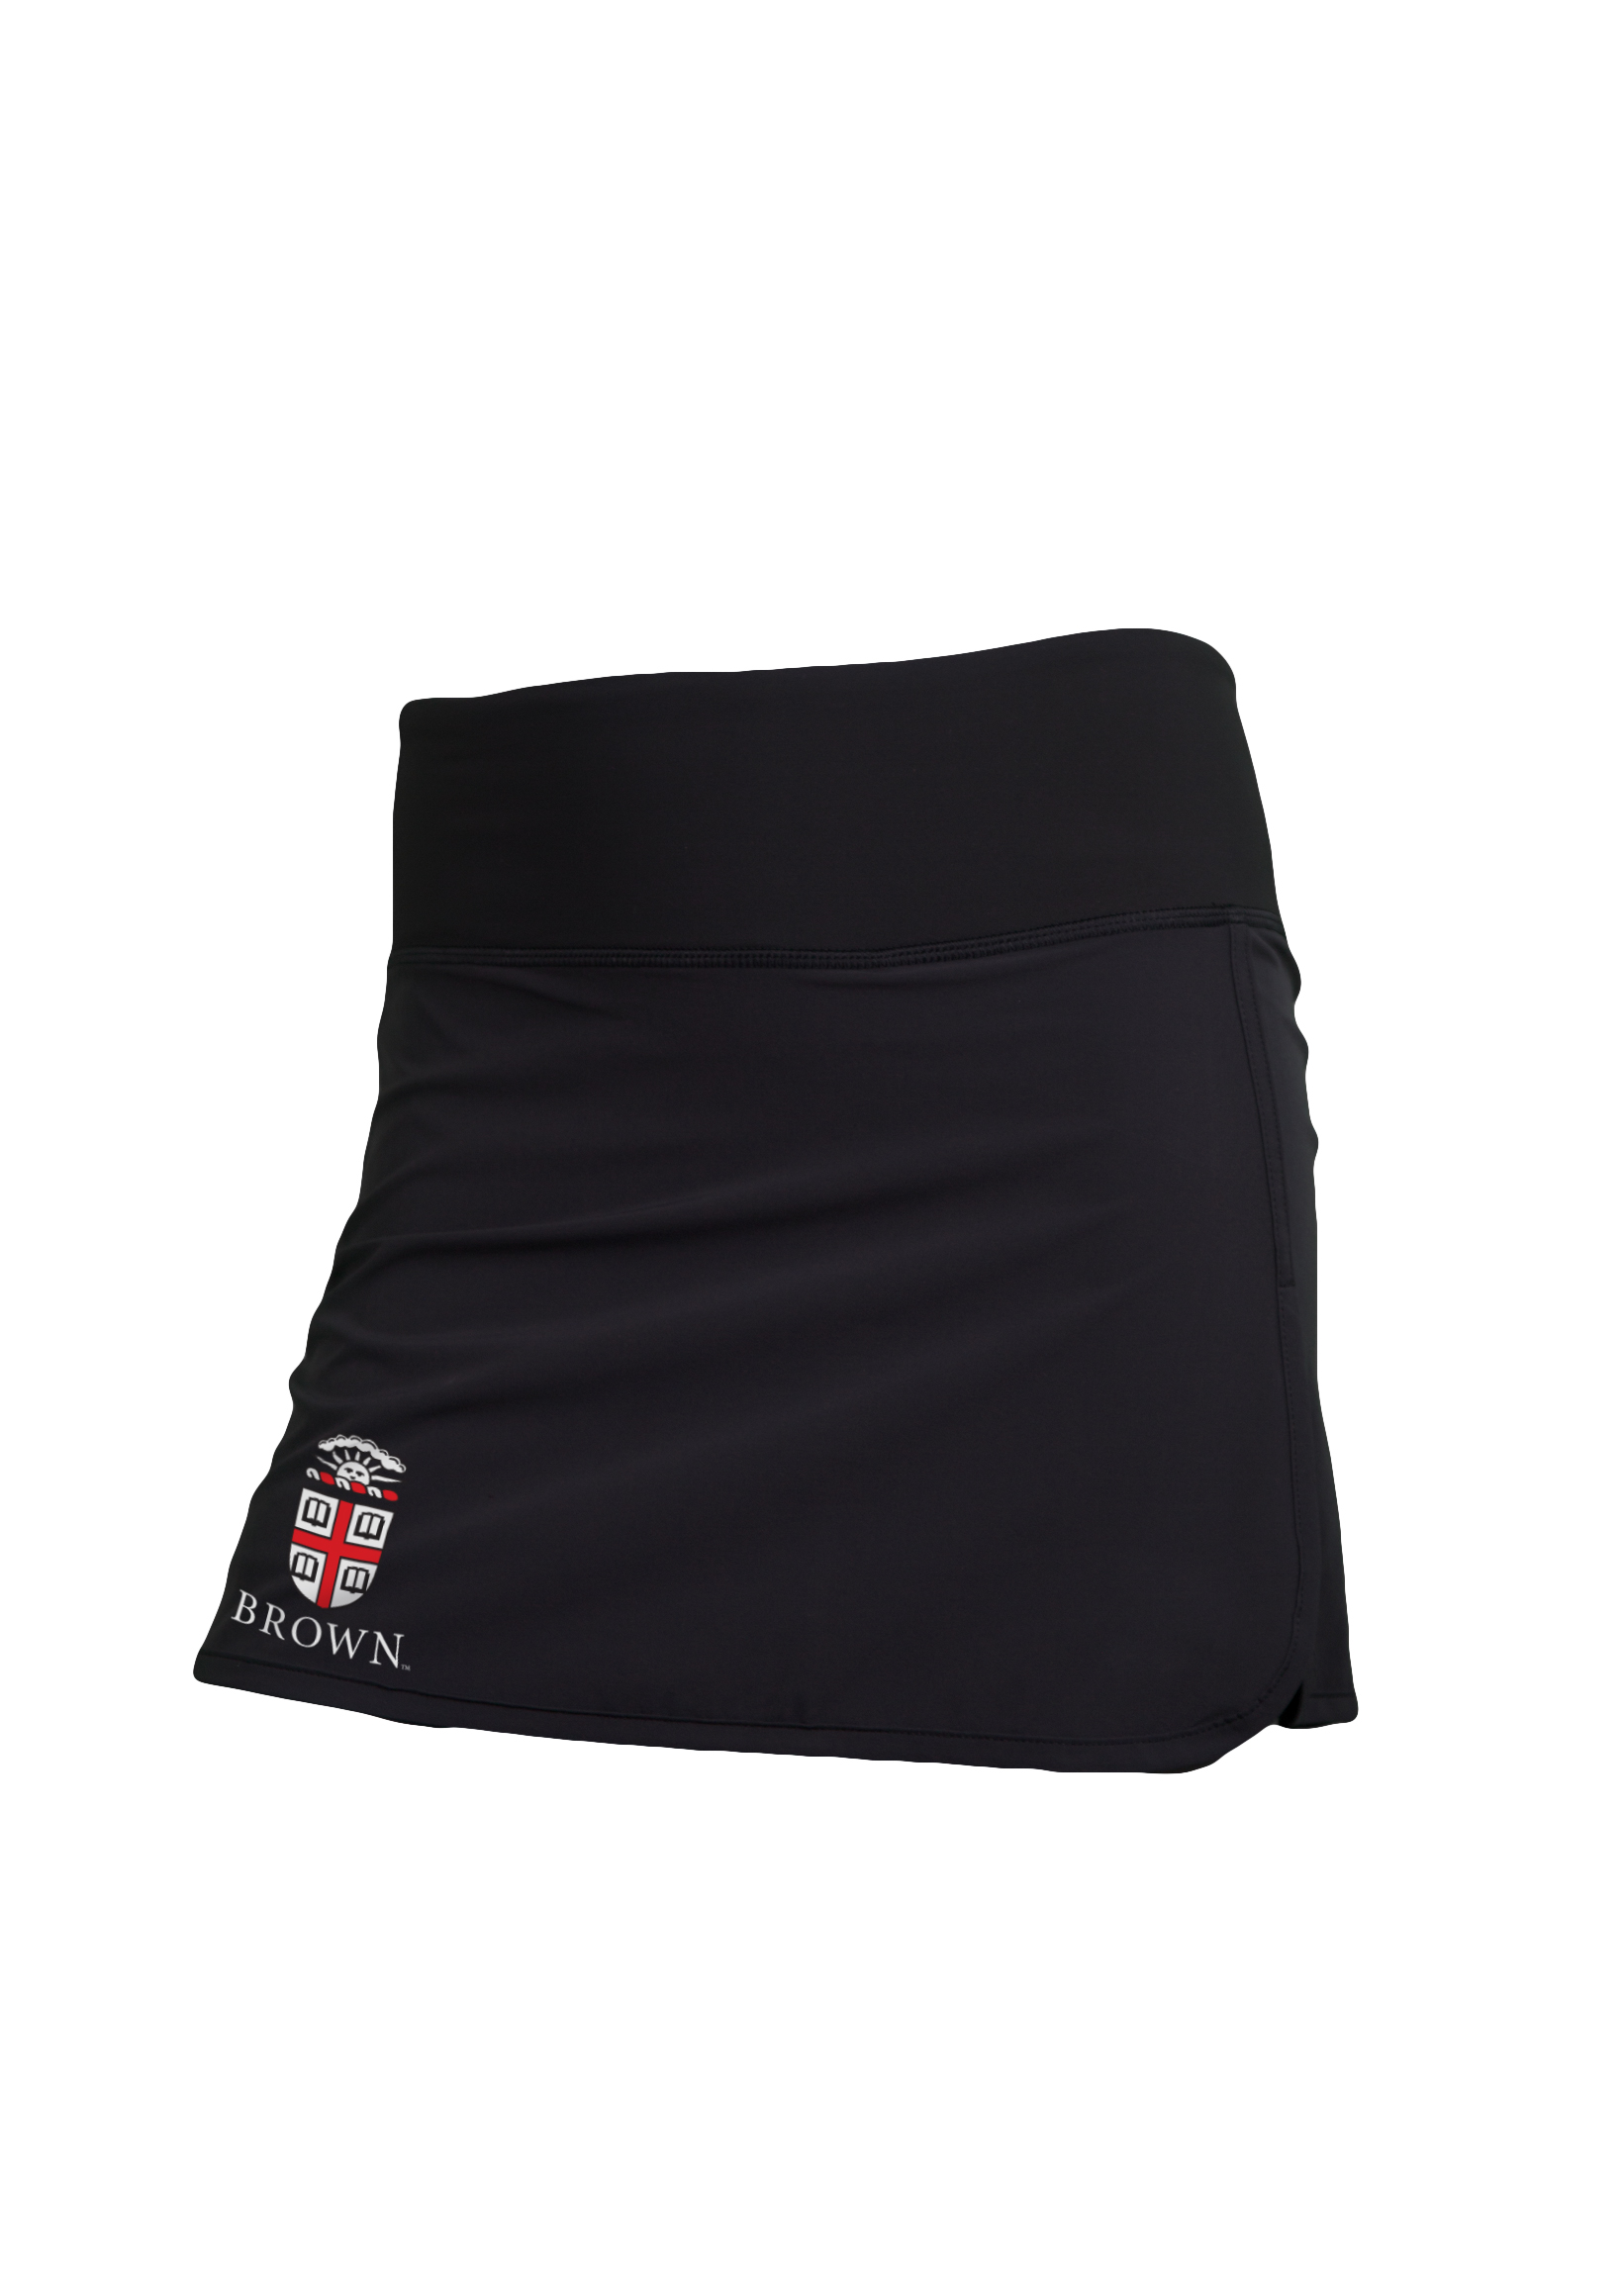 Cover Image For Ivy Citizens Women's Core Performance Skirt - Black or Cameo